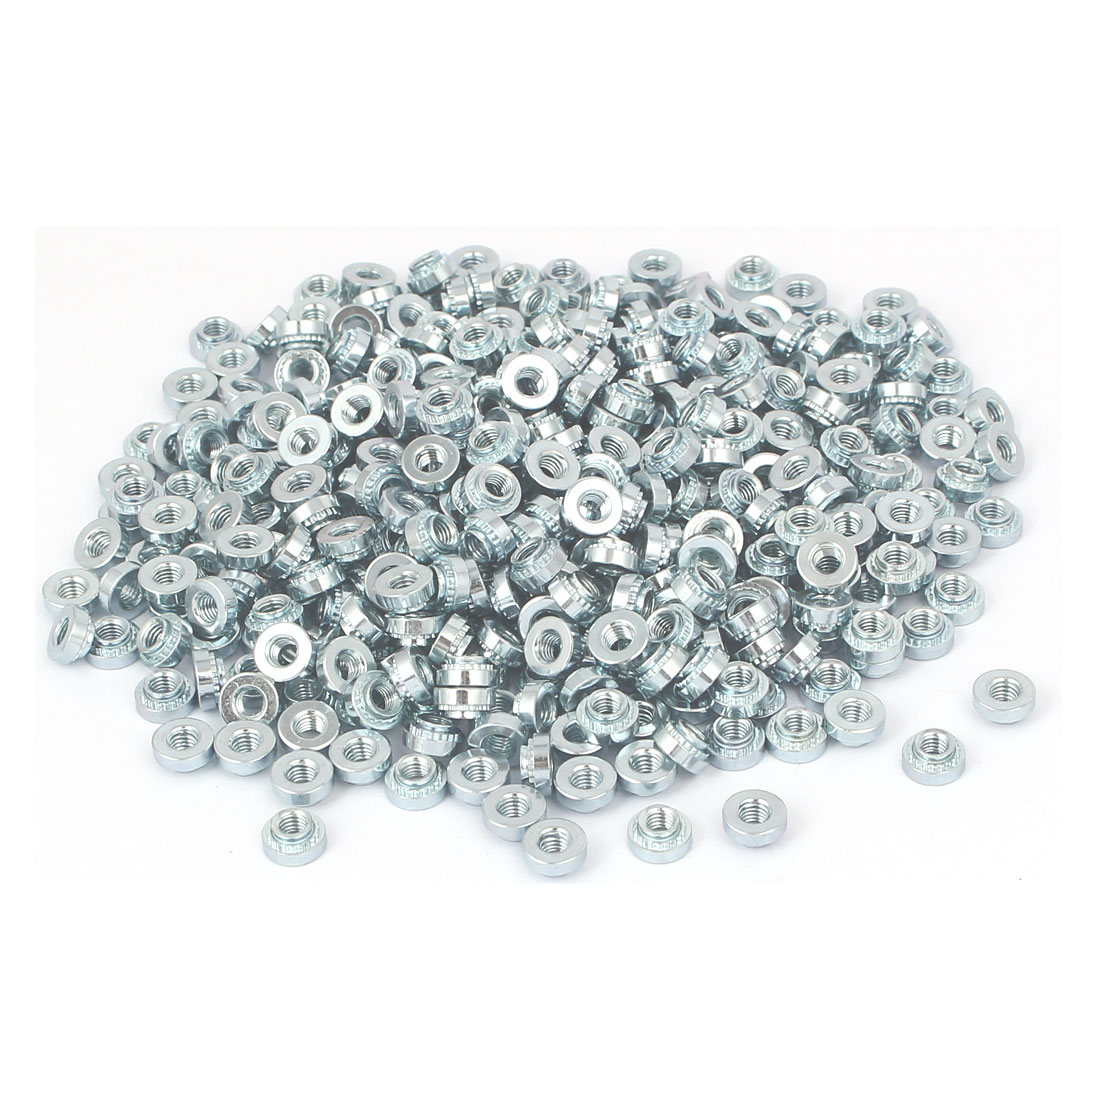 S-M3-2 Carbon Steel Self Clinching Rivet Nut Fastener 500pcs for 1.4mm Thin Plates